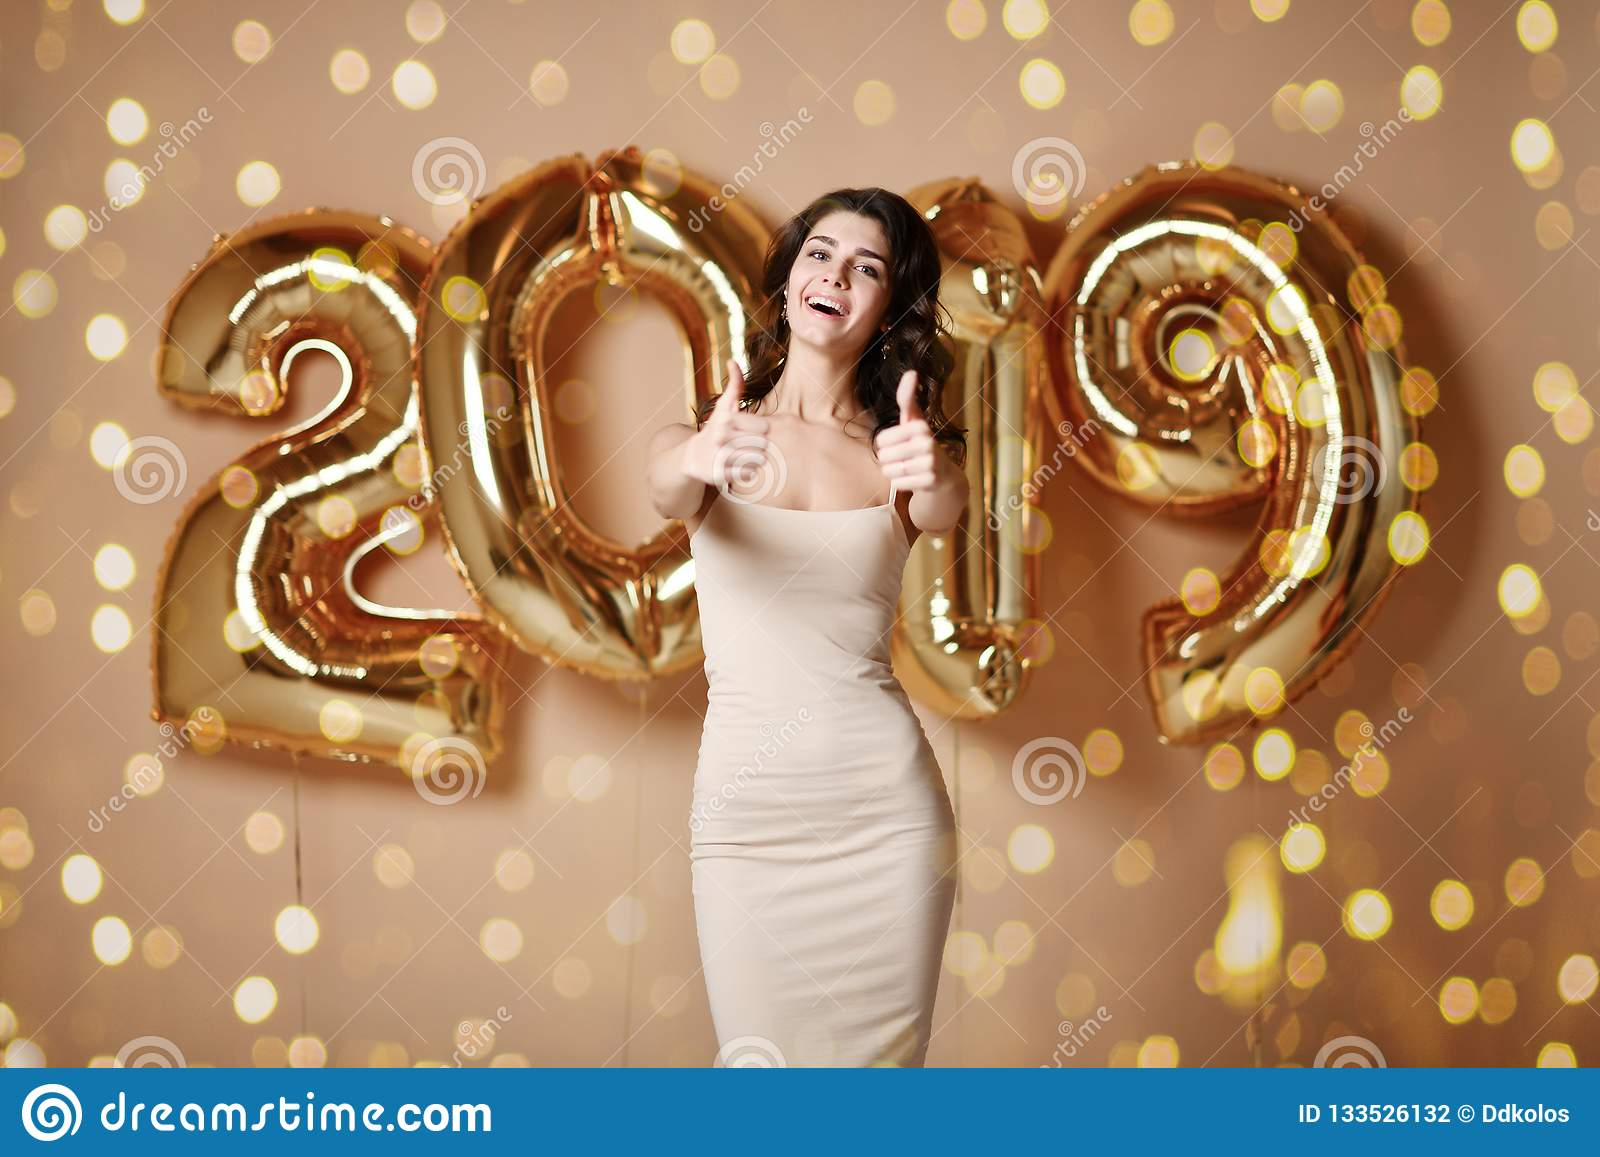 Portrait Of Beautiful Smiling Girl In Shiny Golden Dress Throwing Confetti, Having Fun With Gold 2019 Balloons On Background.